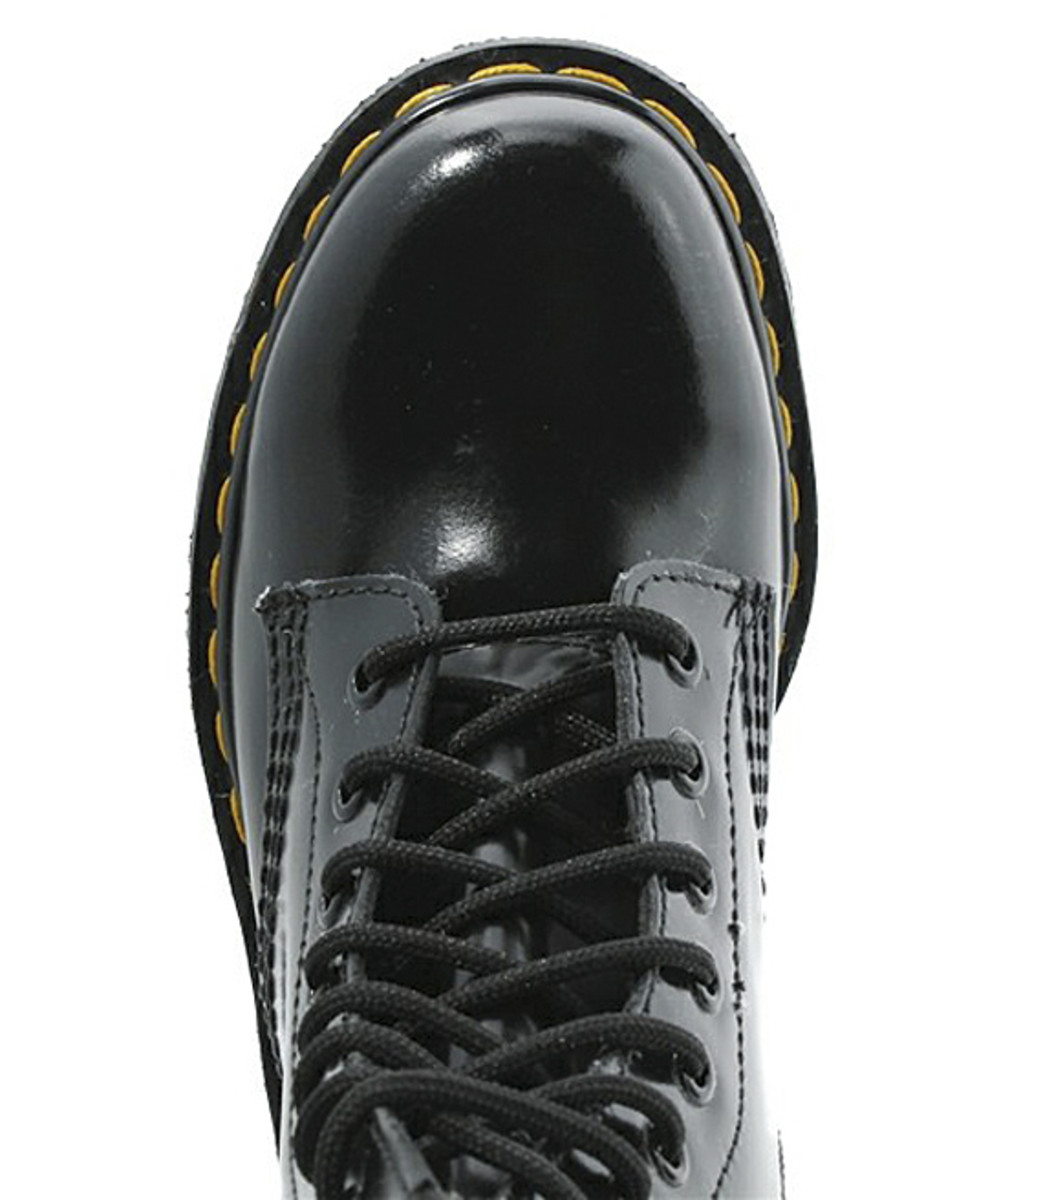 dr-martens-bedwin-heartbreaker-dr-know-boots-05